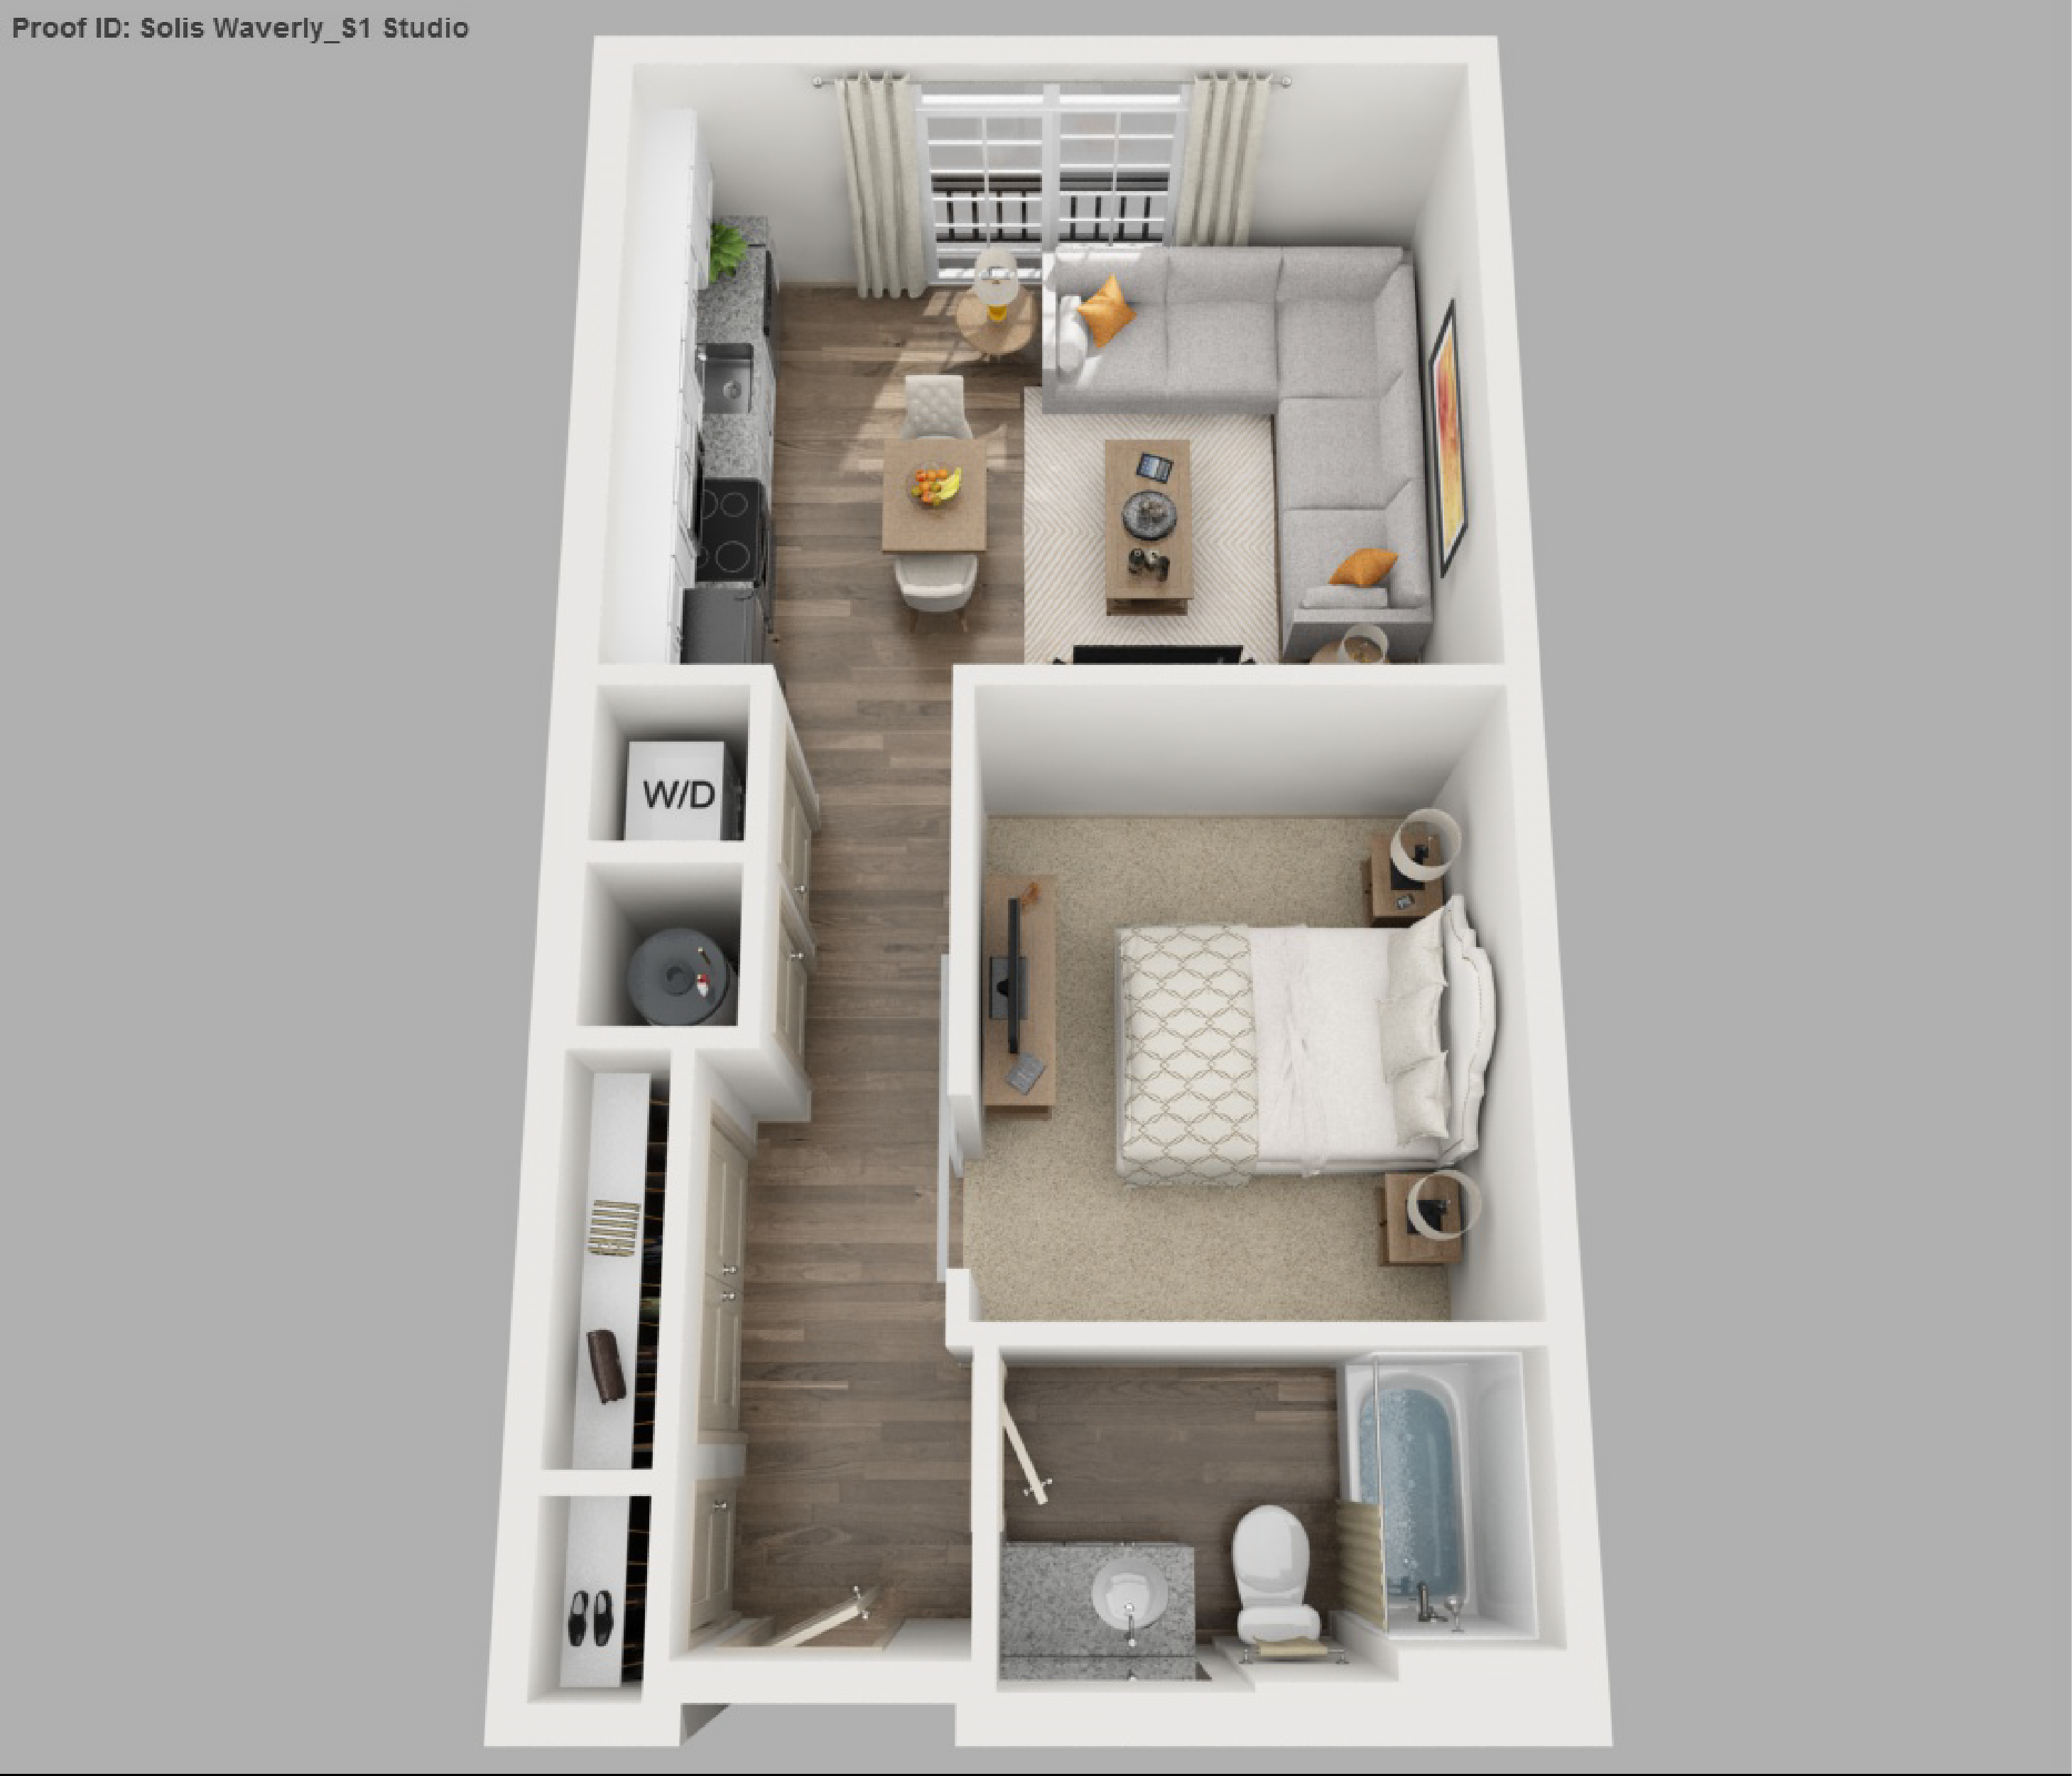 Studio Apartment Floor Plan solis apartments floorplans - waverly